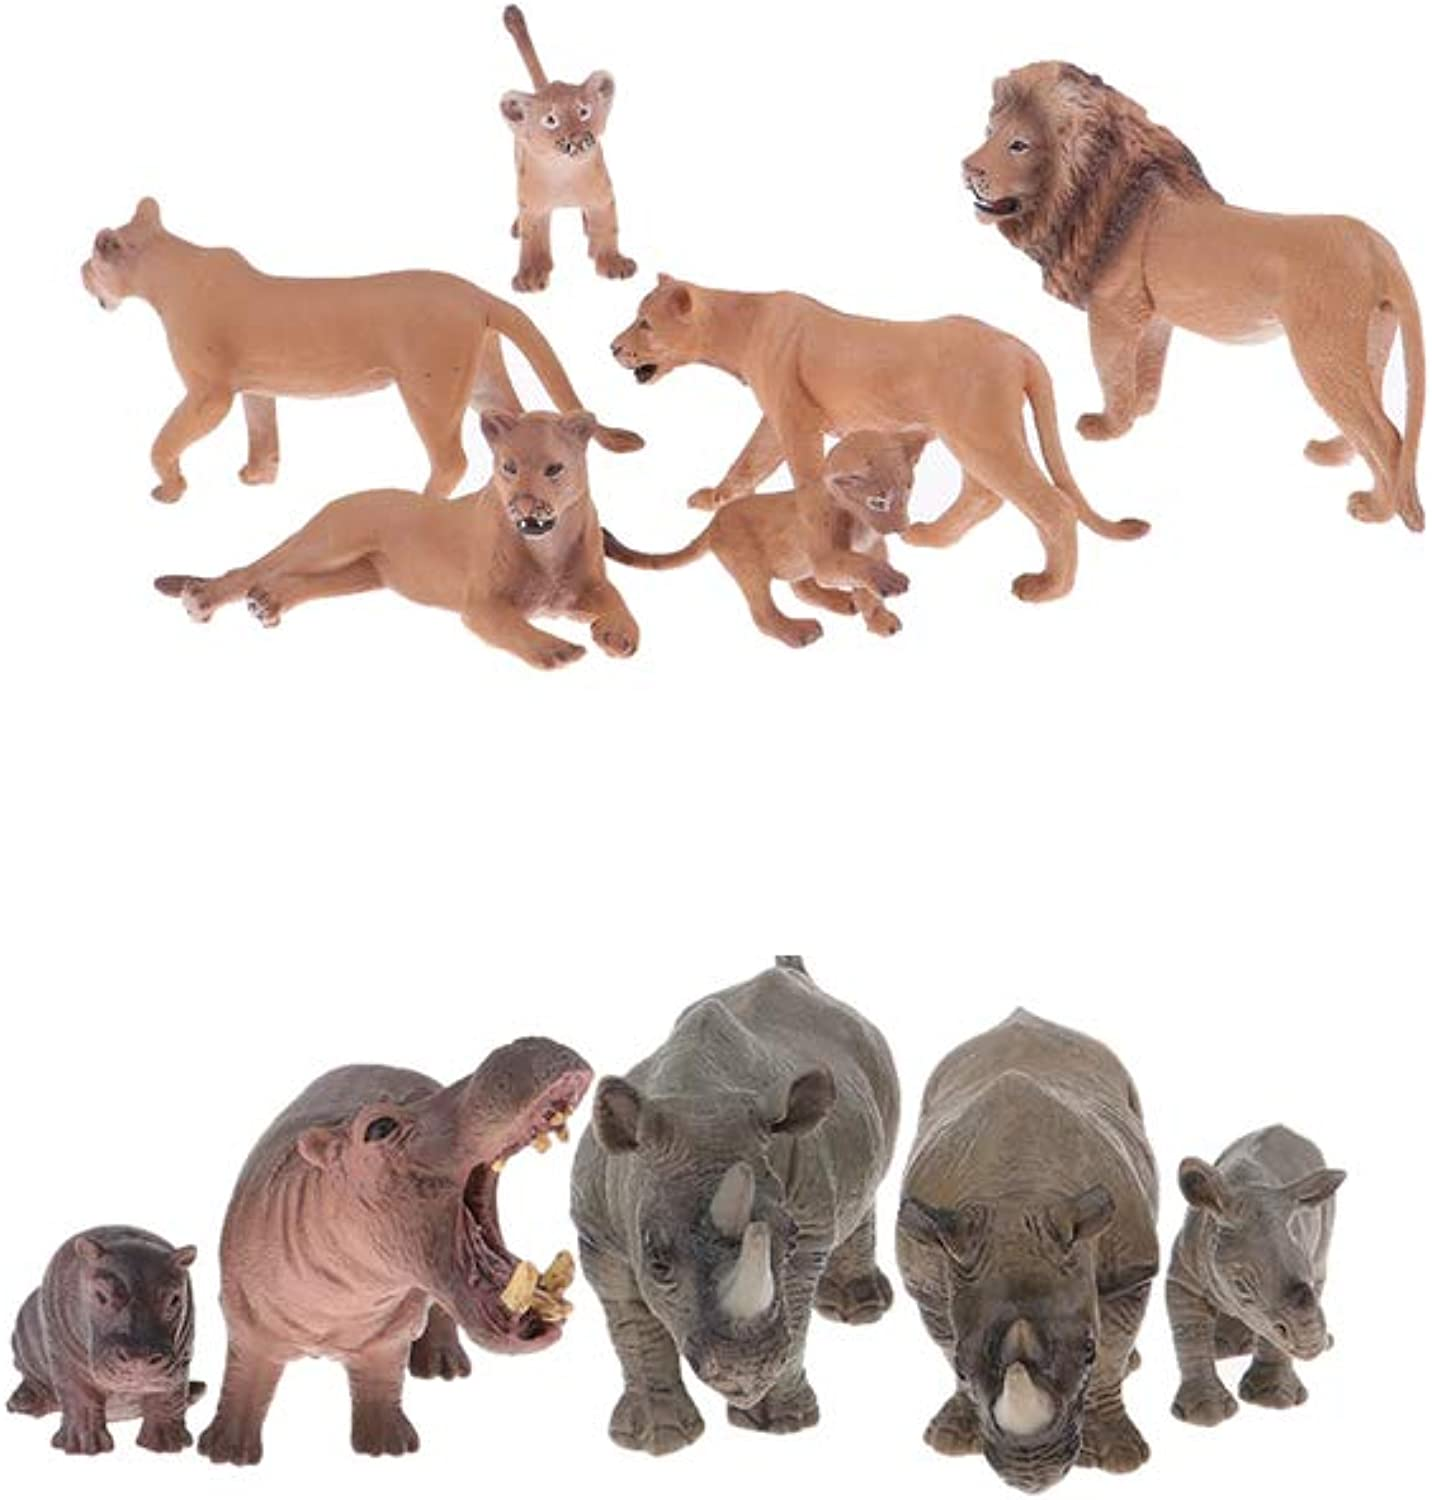 Baoblaze 6X Solid Lion Model Animals Figures Realistic Large Wild Lion Animal Toys + 5X Rhinoceros Hippo Set Figurines Hand Painting